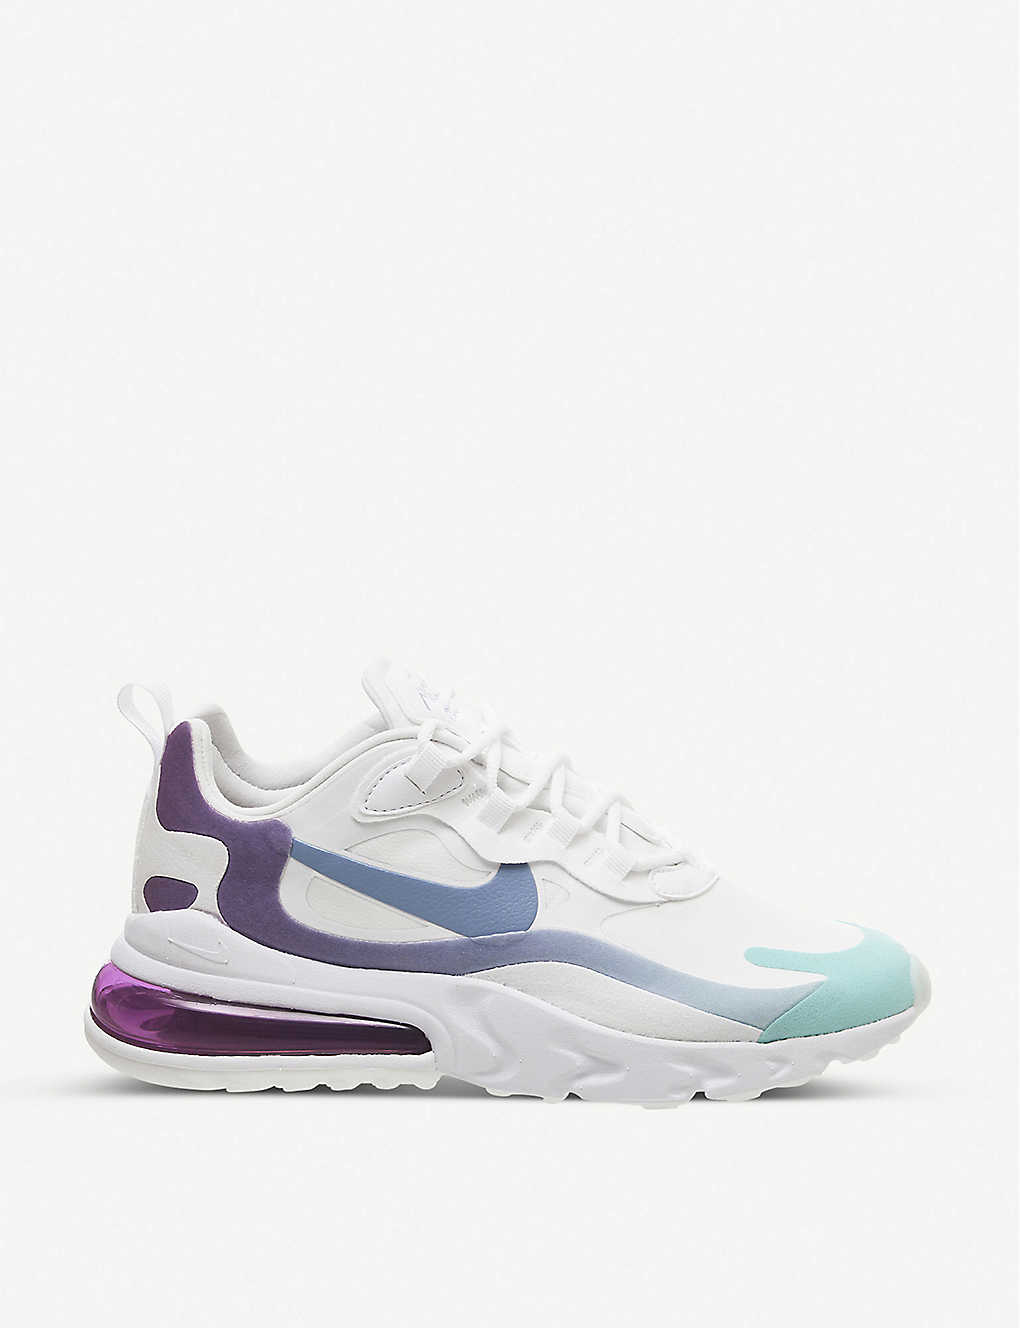 NIKE Air Max 270 React low top trainers |